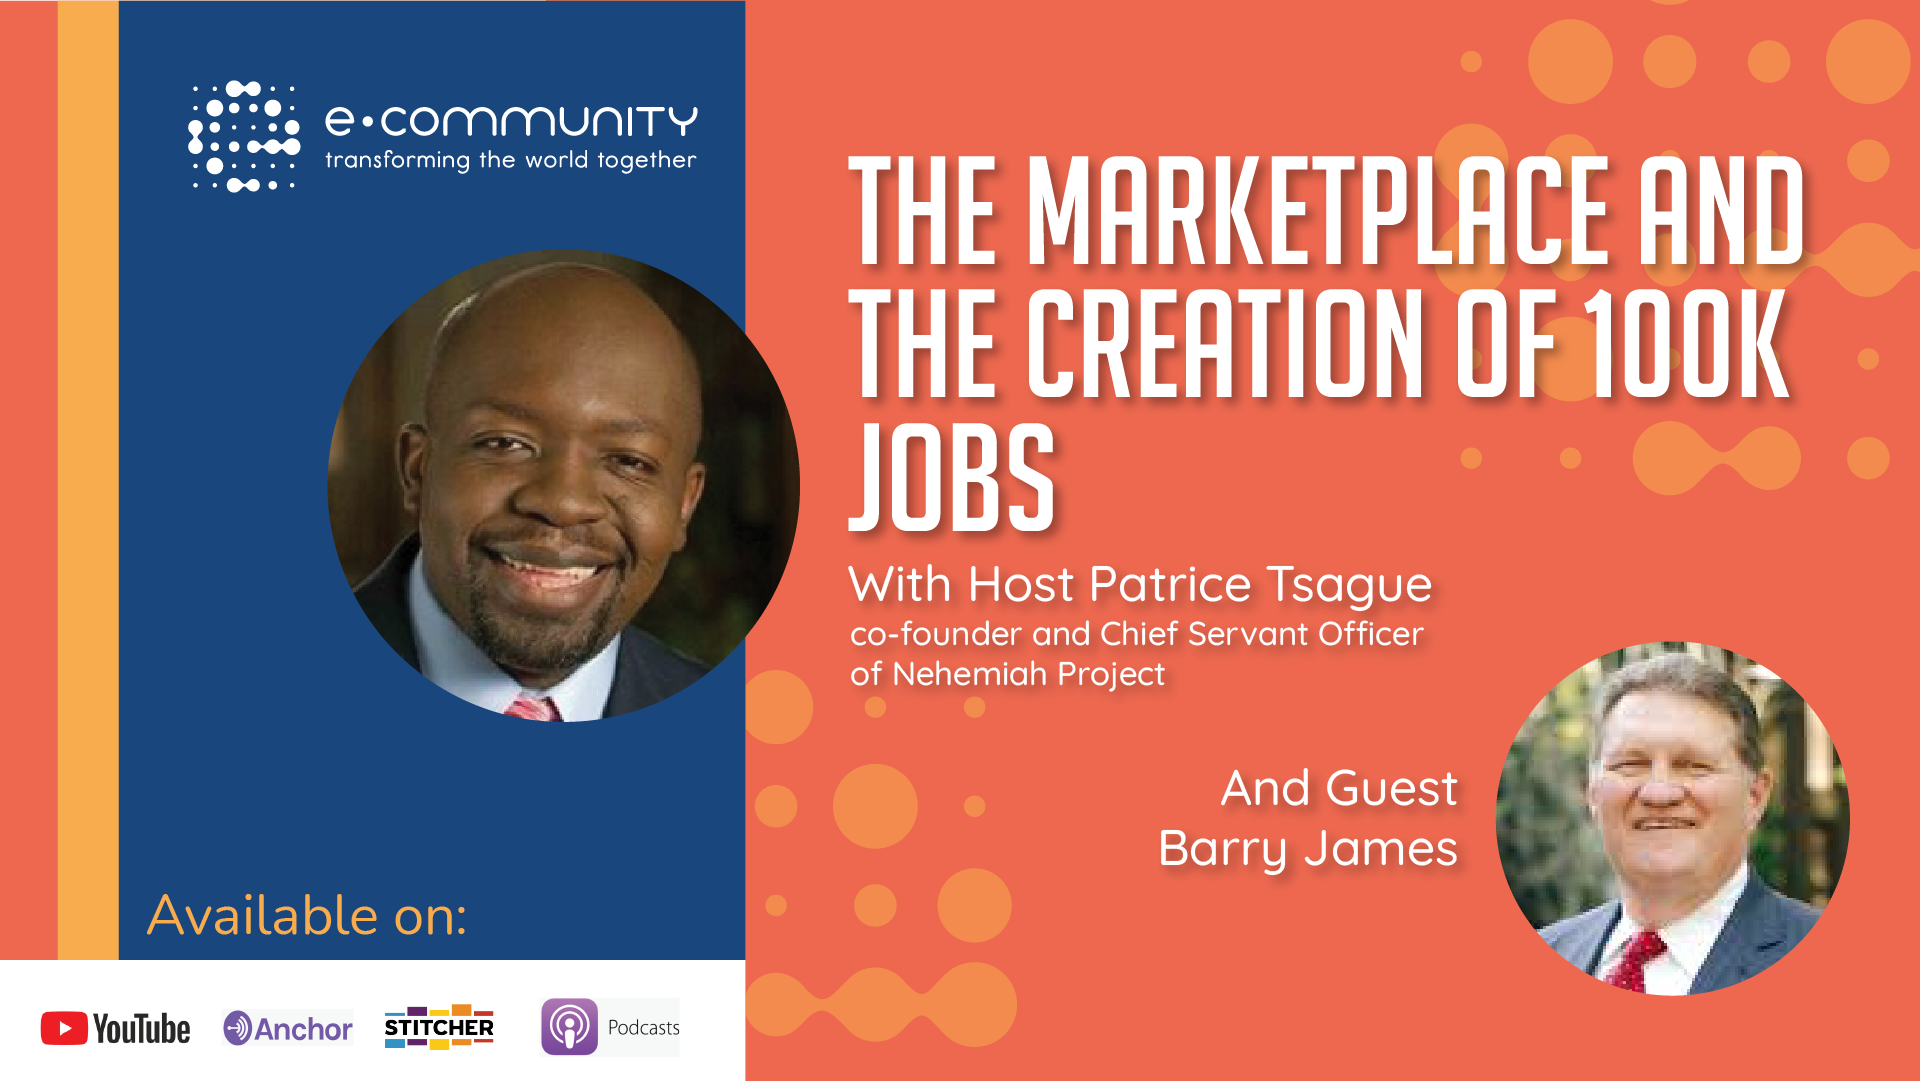 The Marketplace and the Creation of 100K Jobs